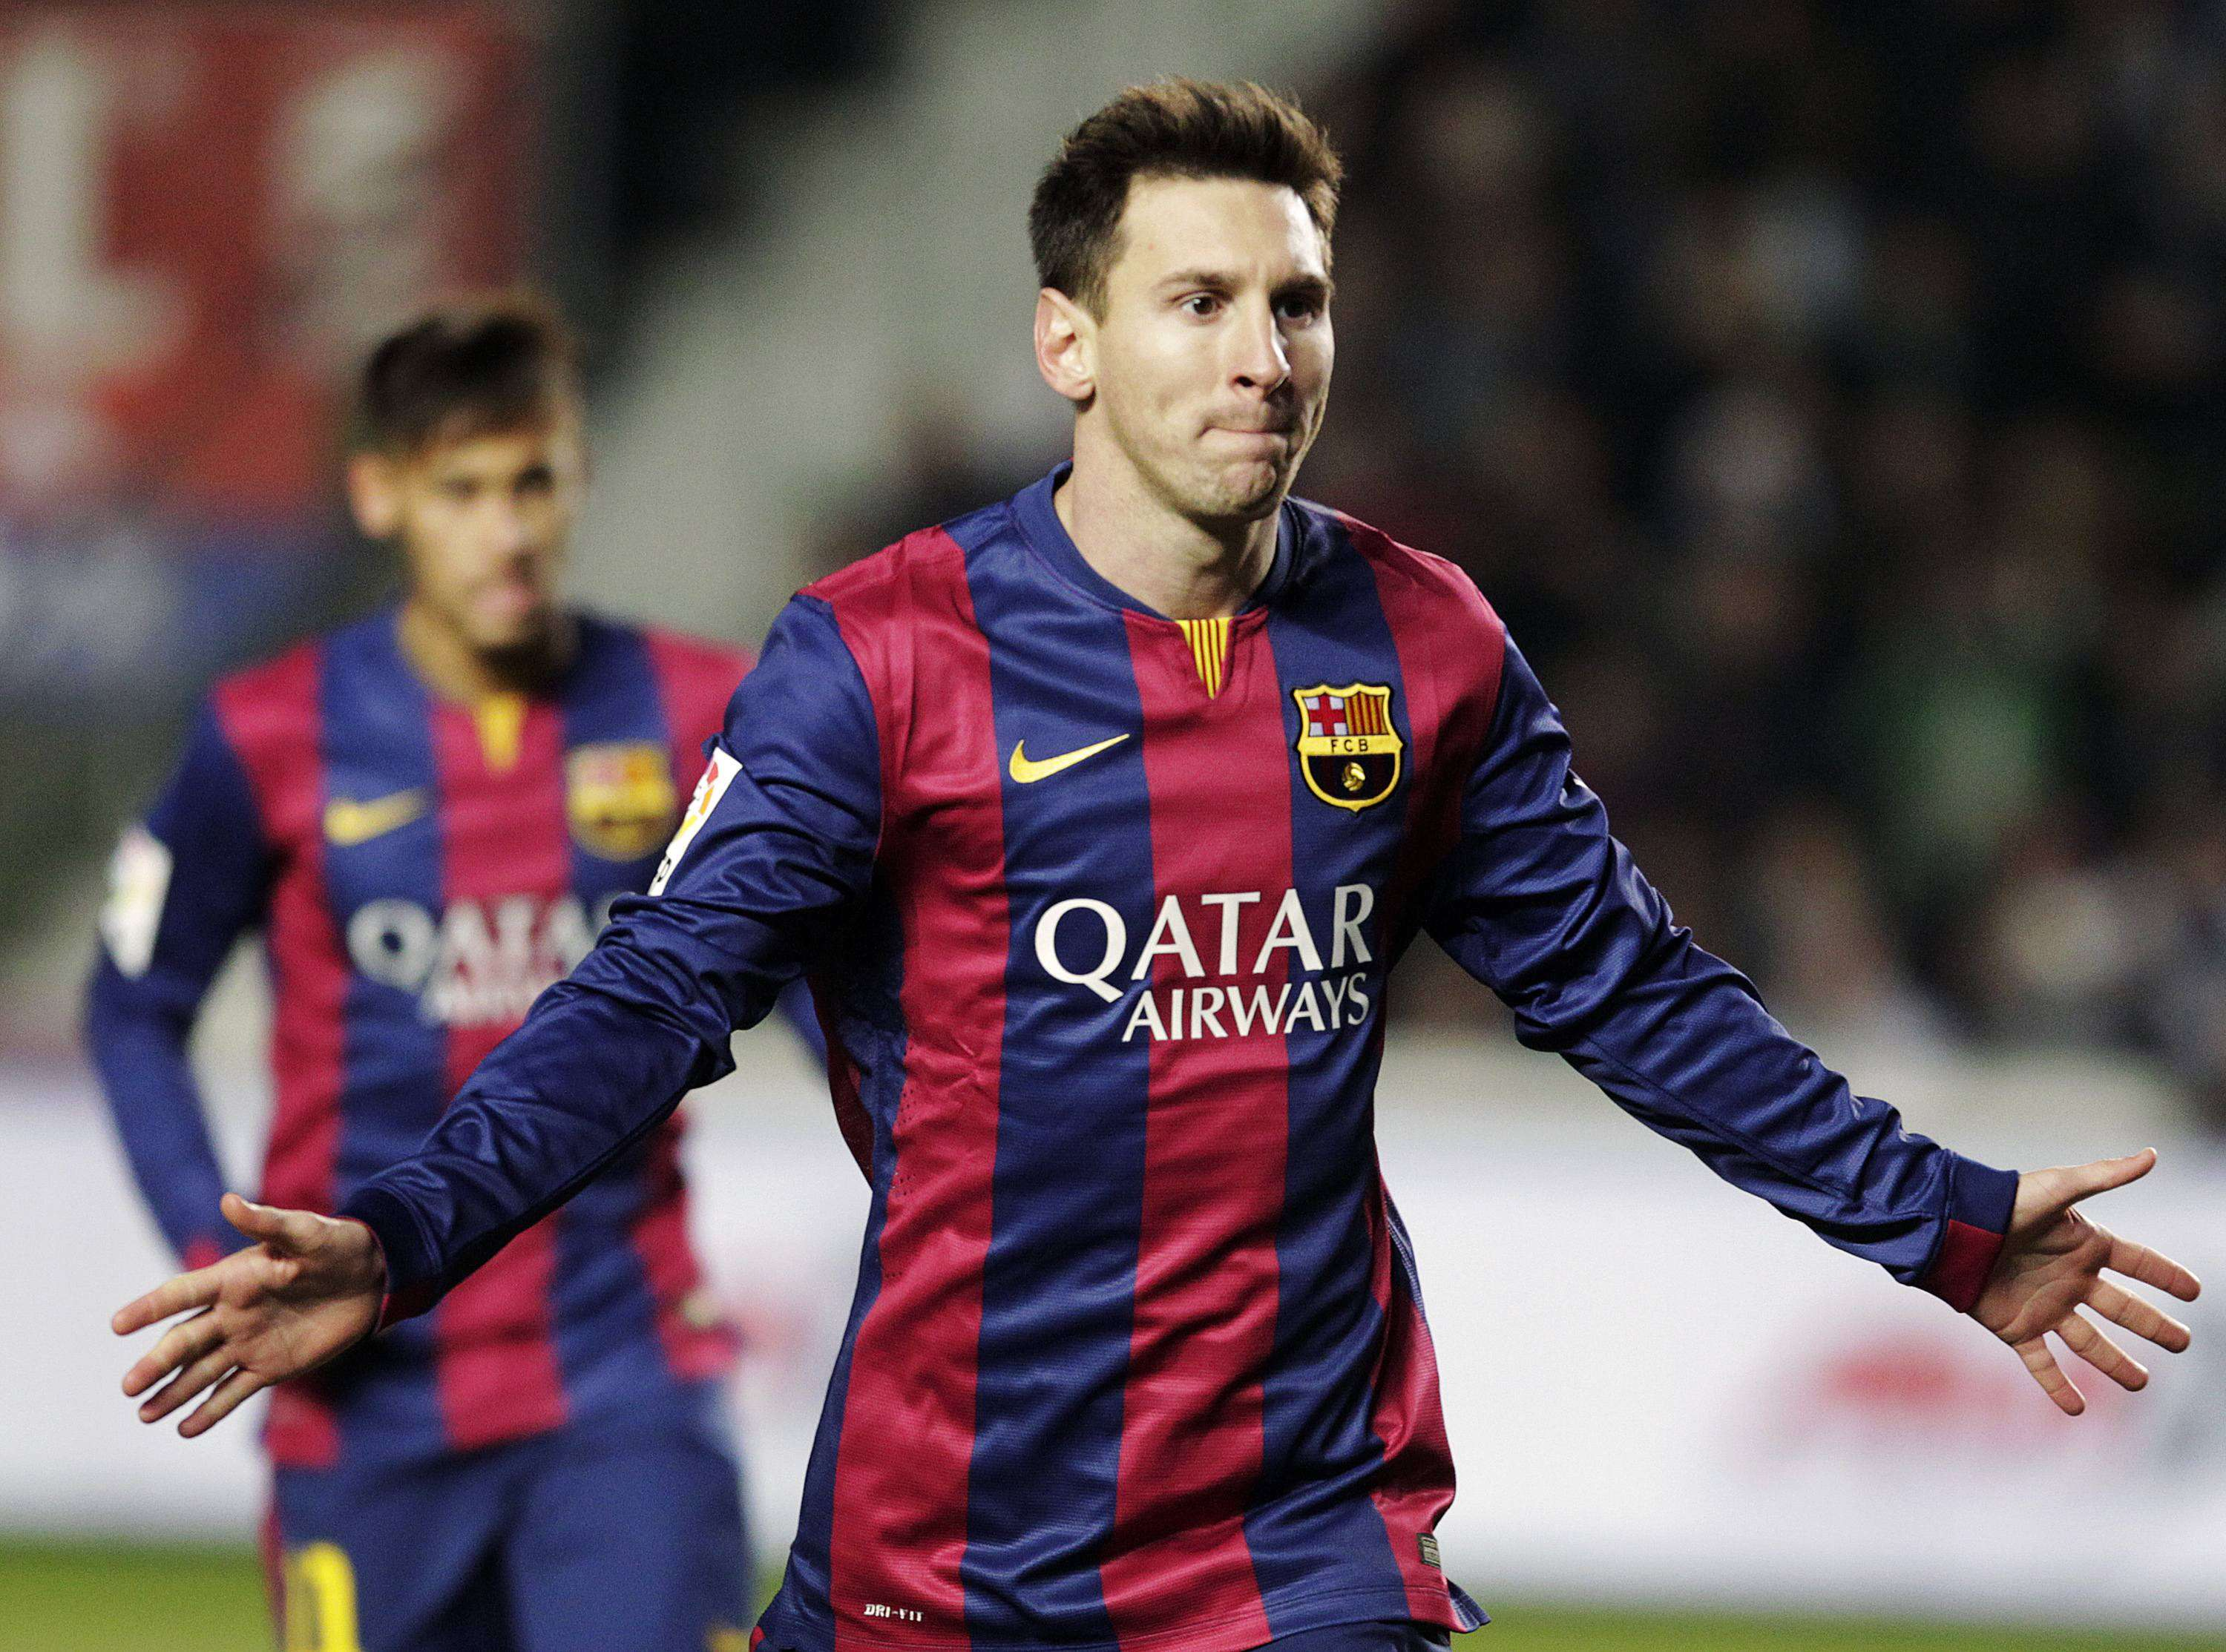 Barcelona's Lionel Messi celebrates after he scored a penalty against Elche during their Spanish first division soccer match at Martinez Valero stadium in Elche January 24, 2015. REUTERS/Heino Kalis (SPAIN - Tags: SPORT SOCCER) Foto: HEINO KALIS/REUTERS